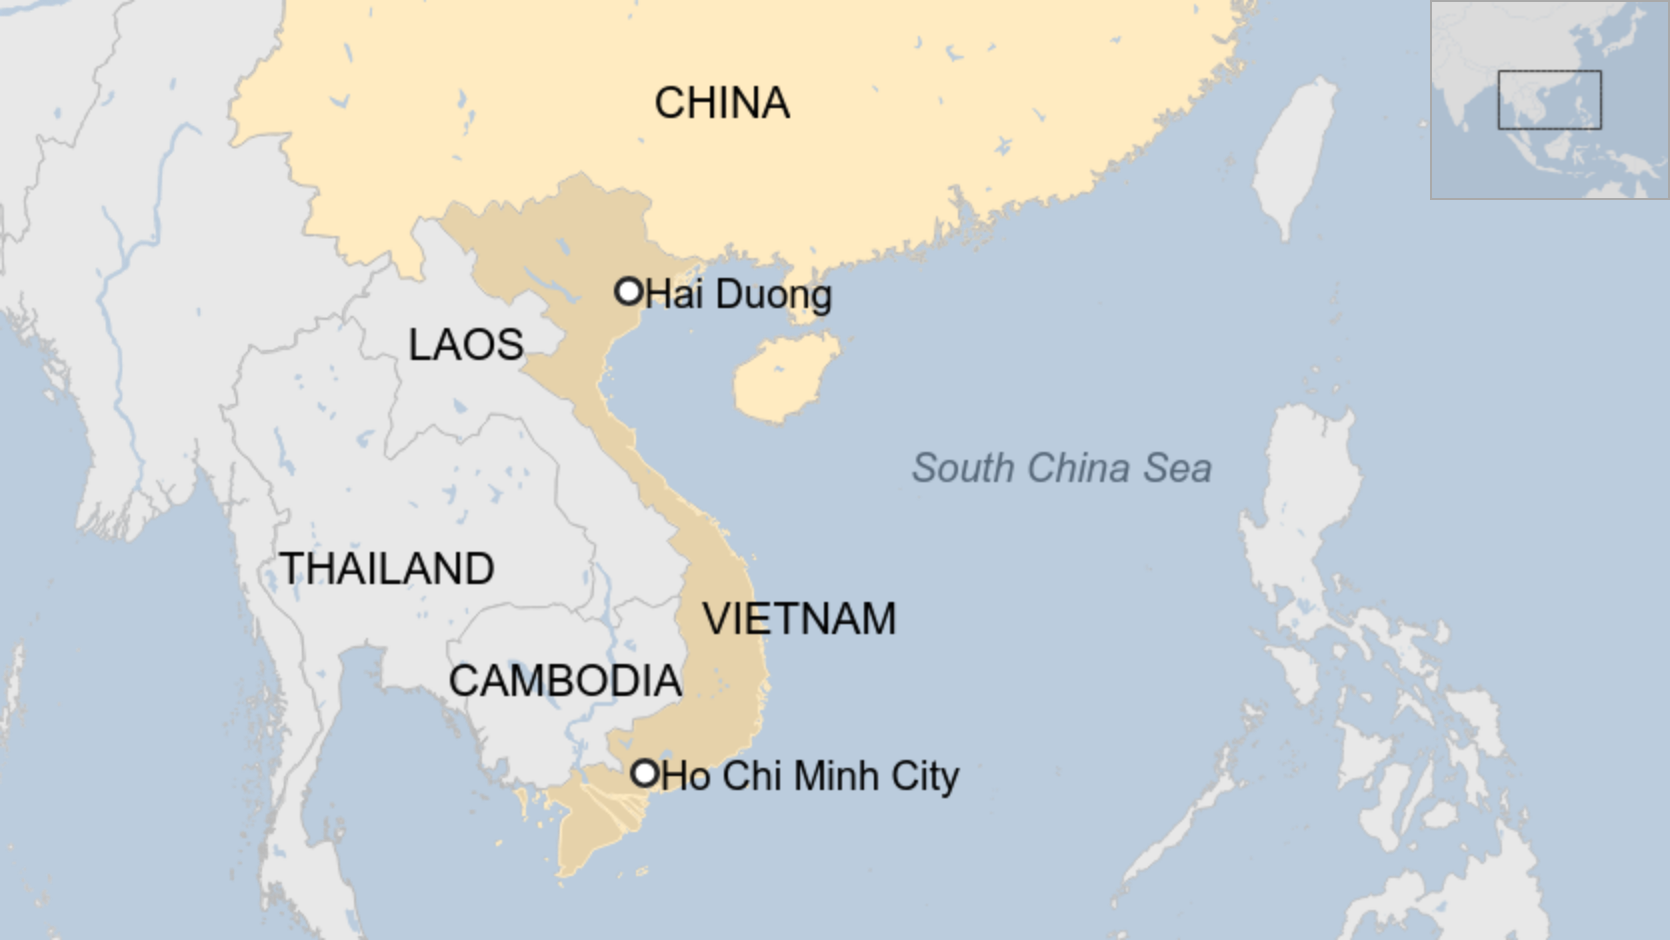 Map of Vietnam and China